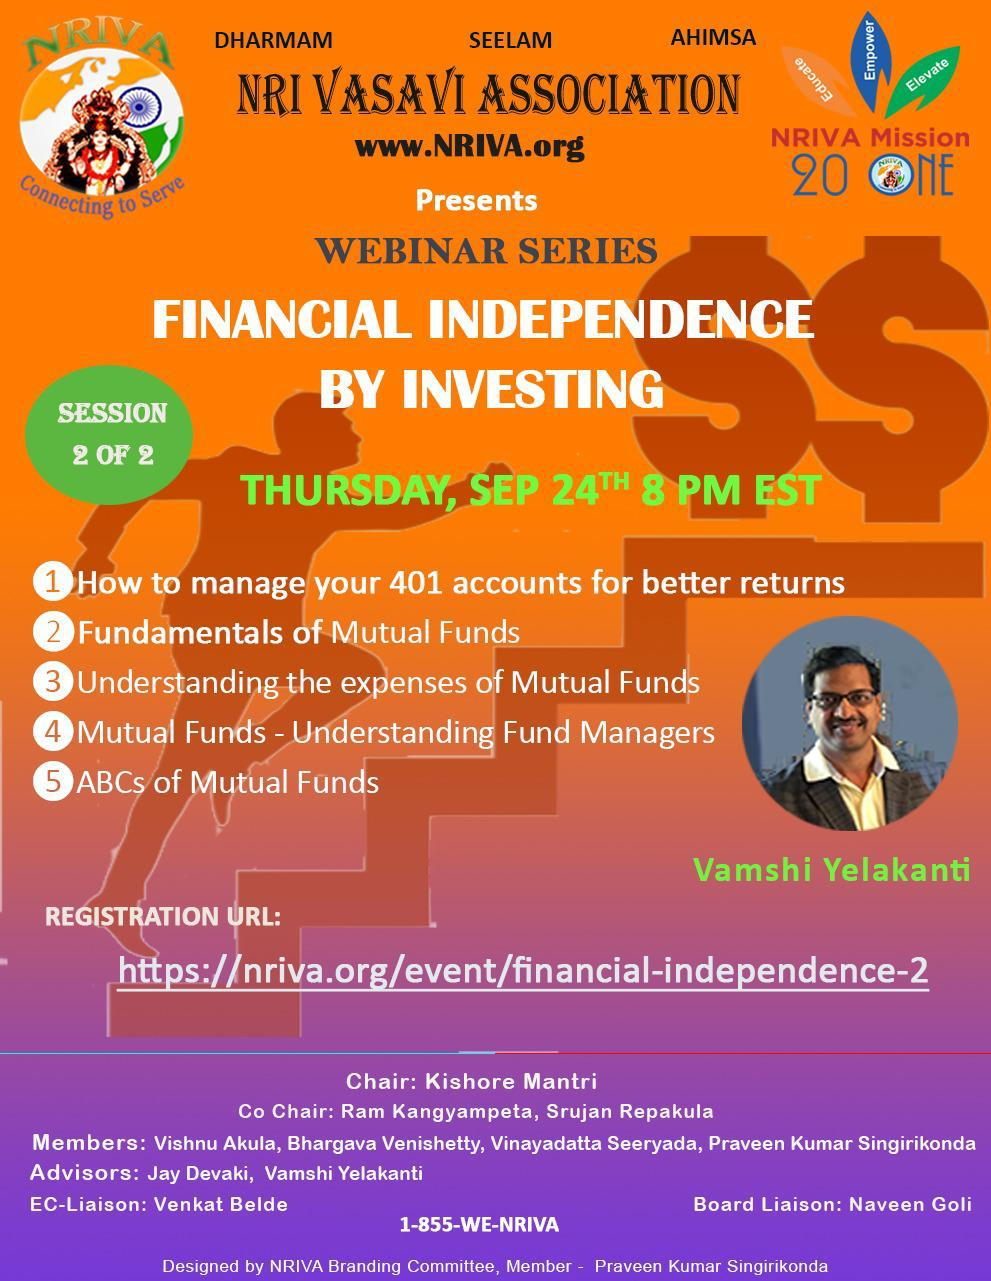 Financial Independence Through Investing (Session II)